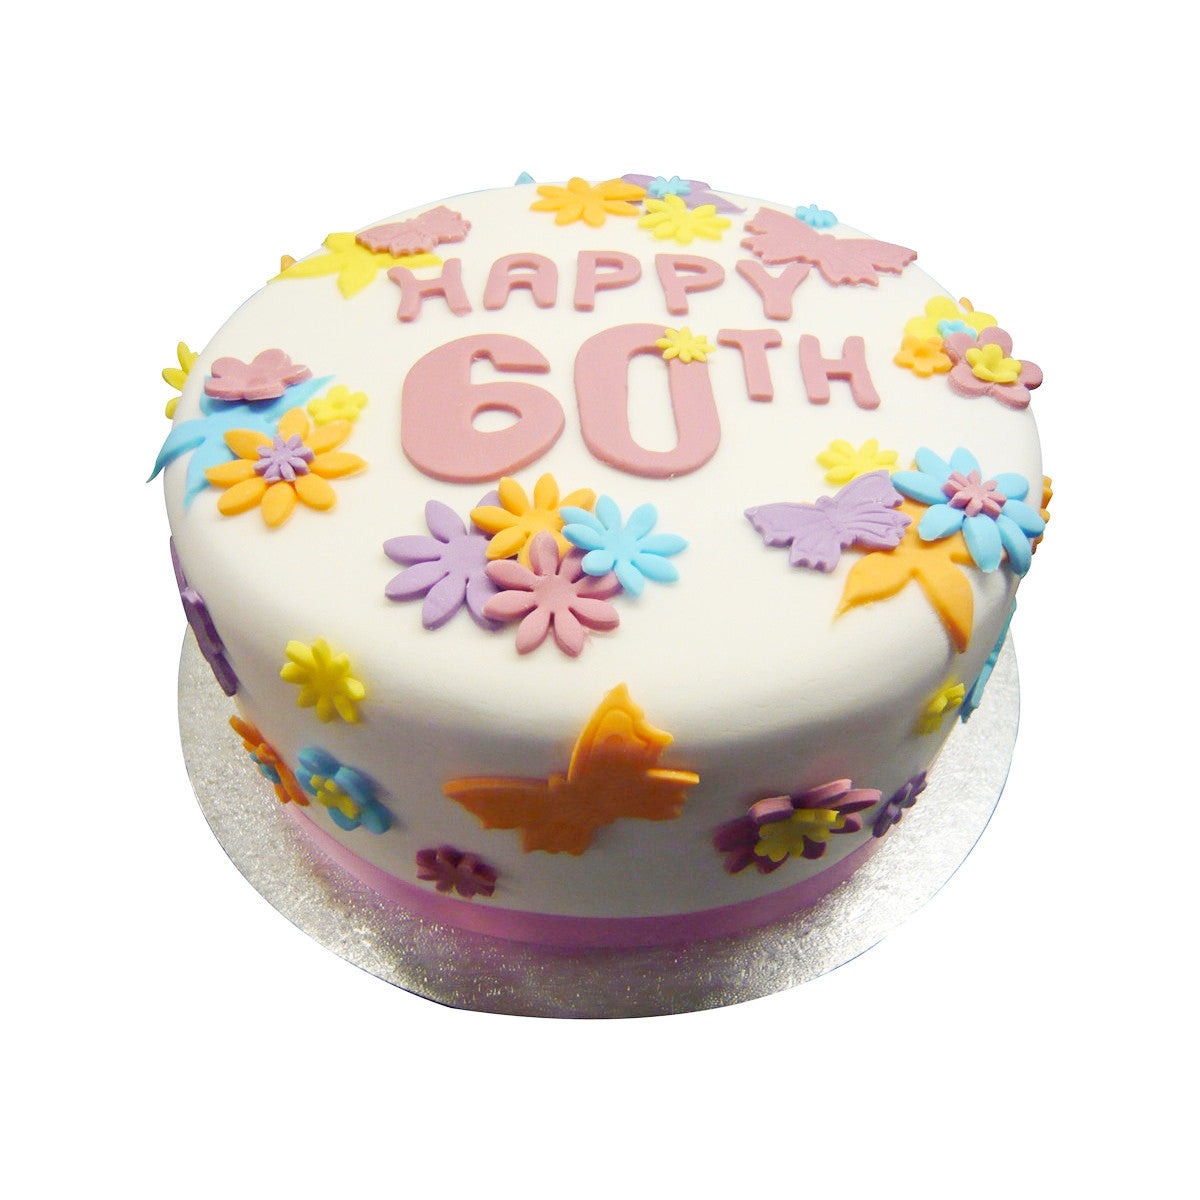 Astounding 60Th Birthday Cake Buy Online Free Uk Delivery New Cakes Personalised Birthday Cards Paralily Jamesorg